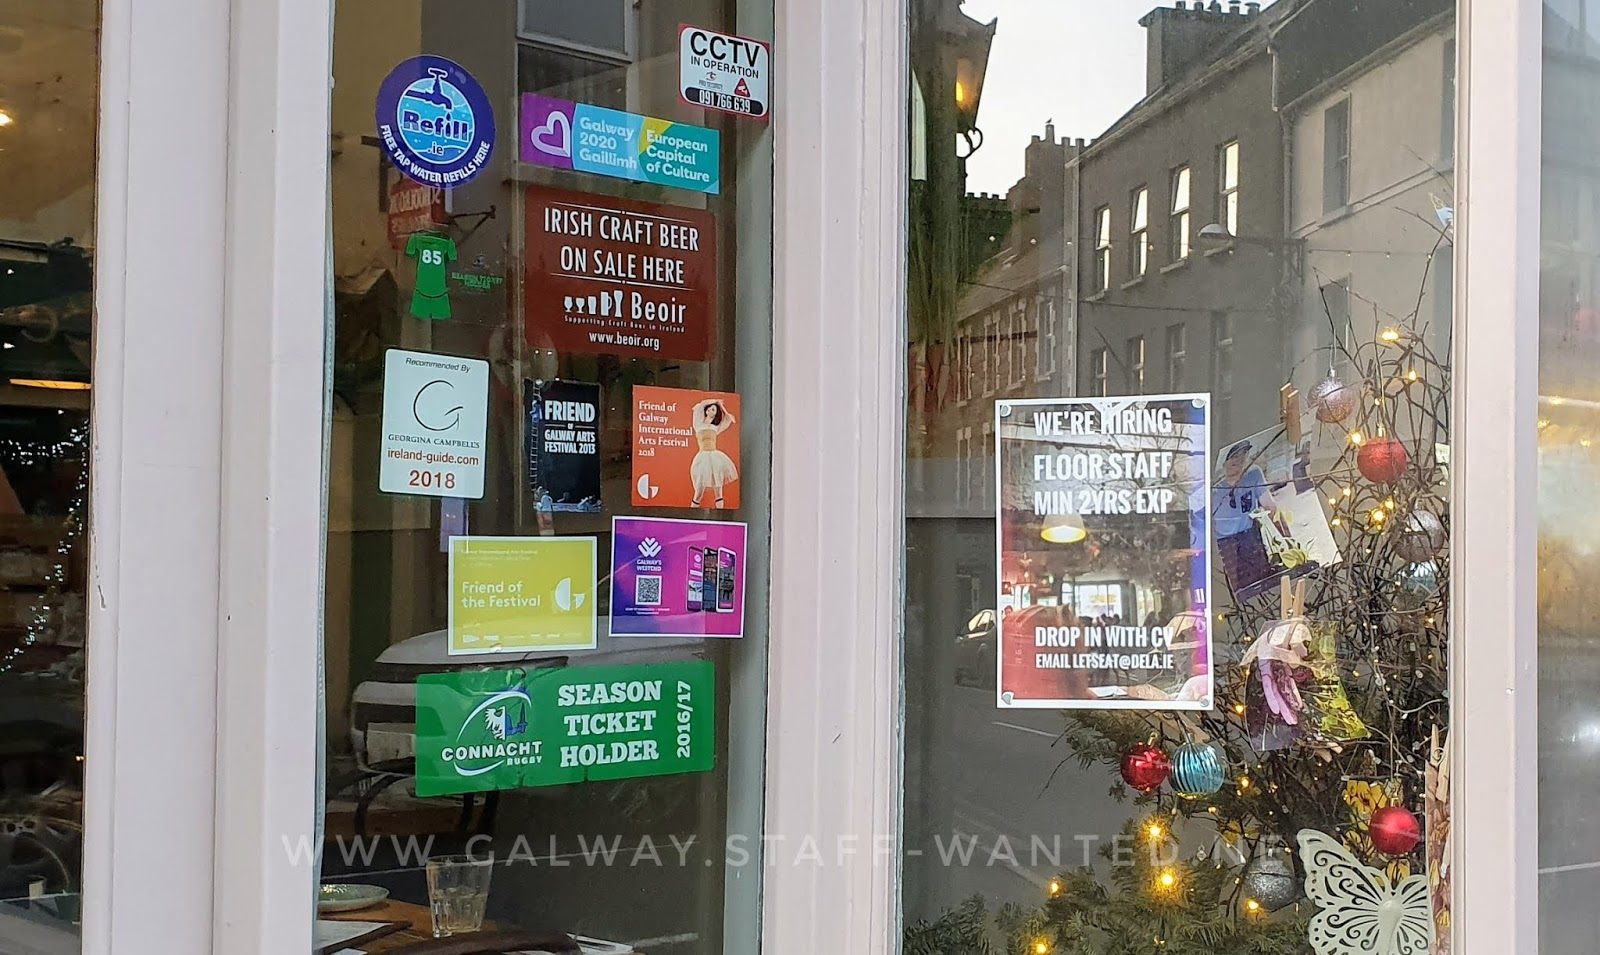 job add in front of Christmas decorationns - shopfront also has stickets for Connacht rubgy season ticket holder, and craft-beef available in this restaurant